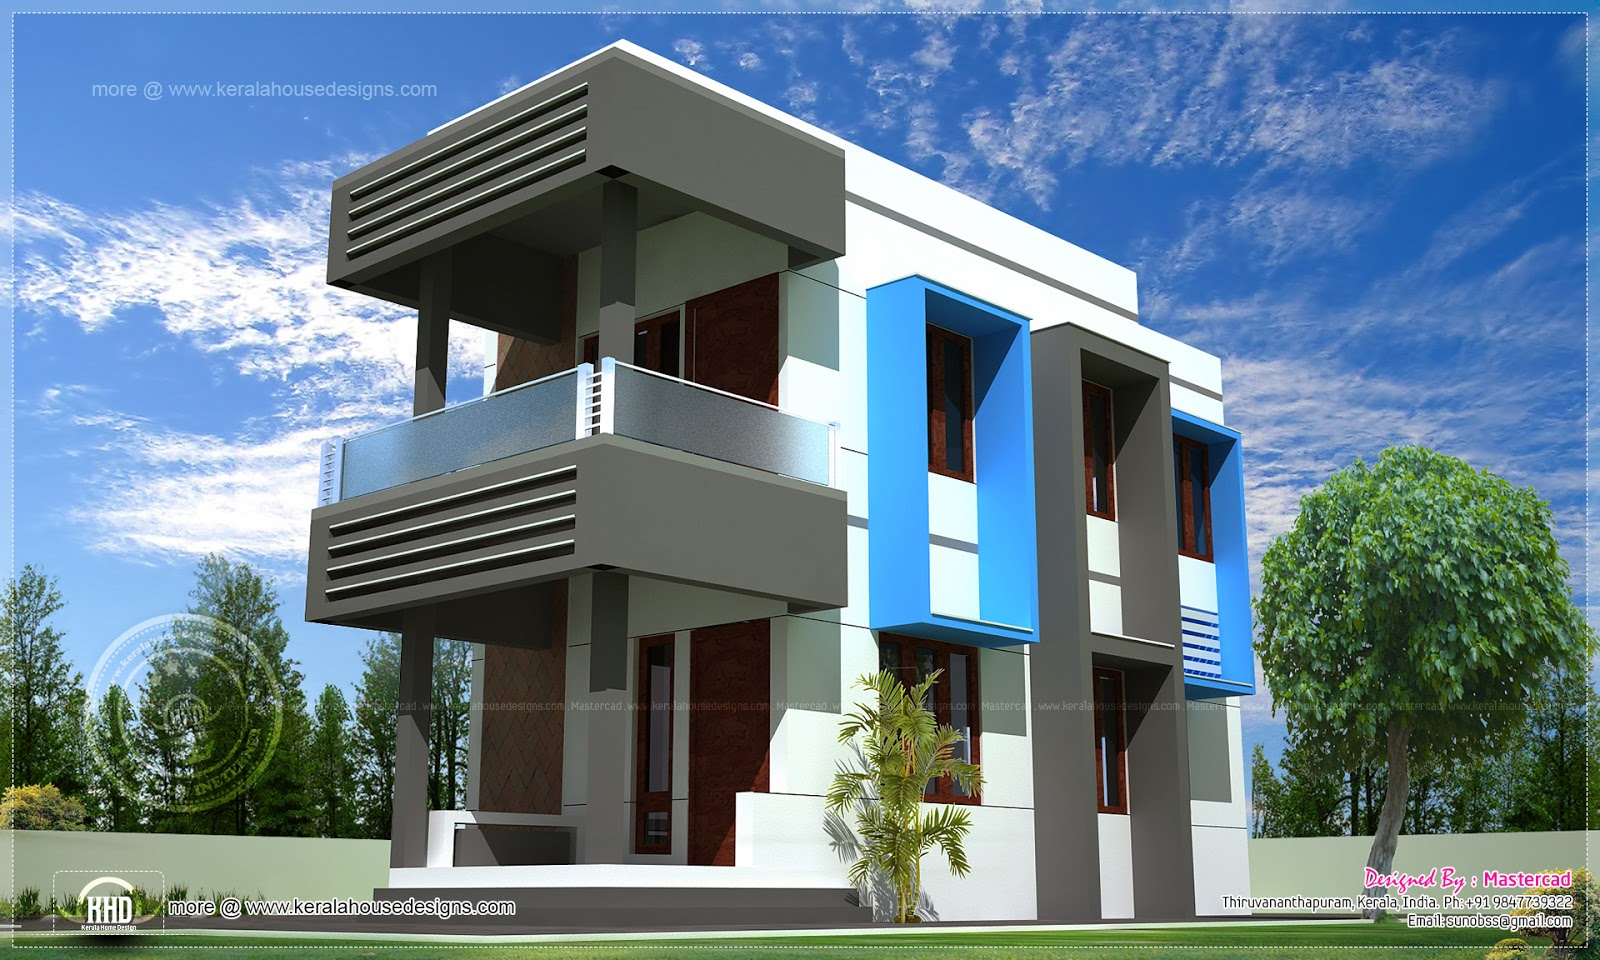 Contemporary compact villa design home kerala plans for Compact home designs